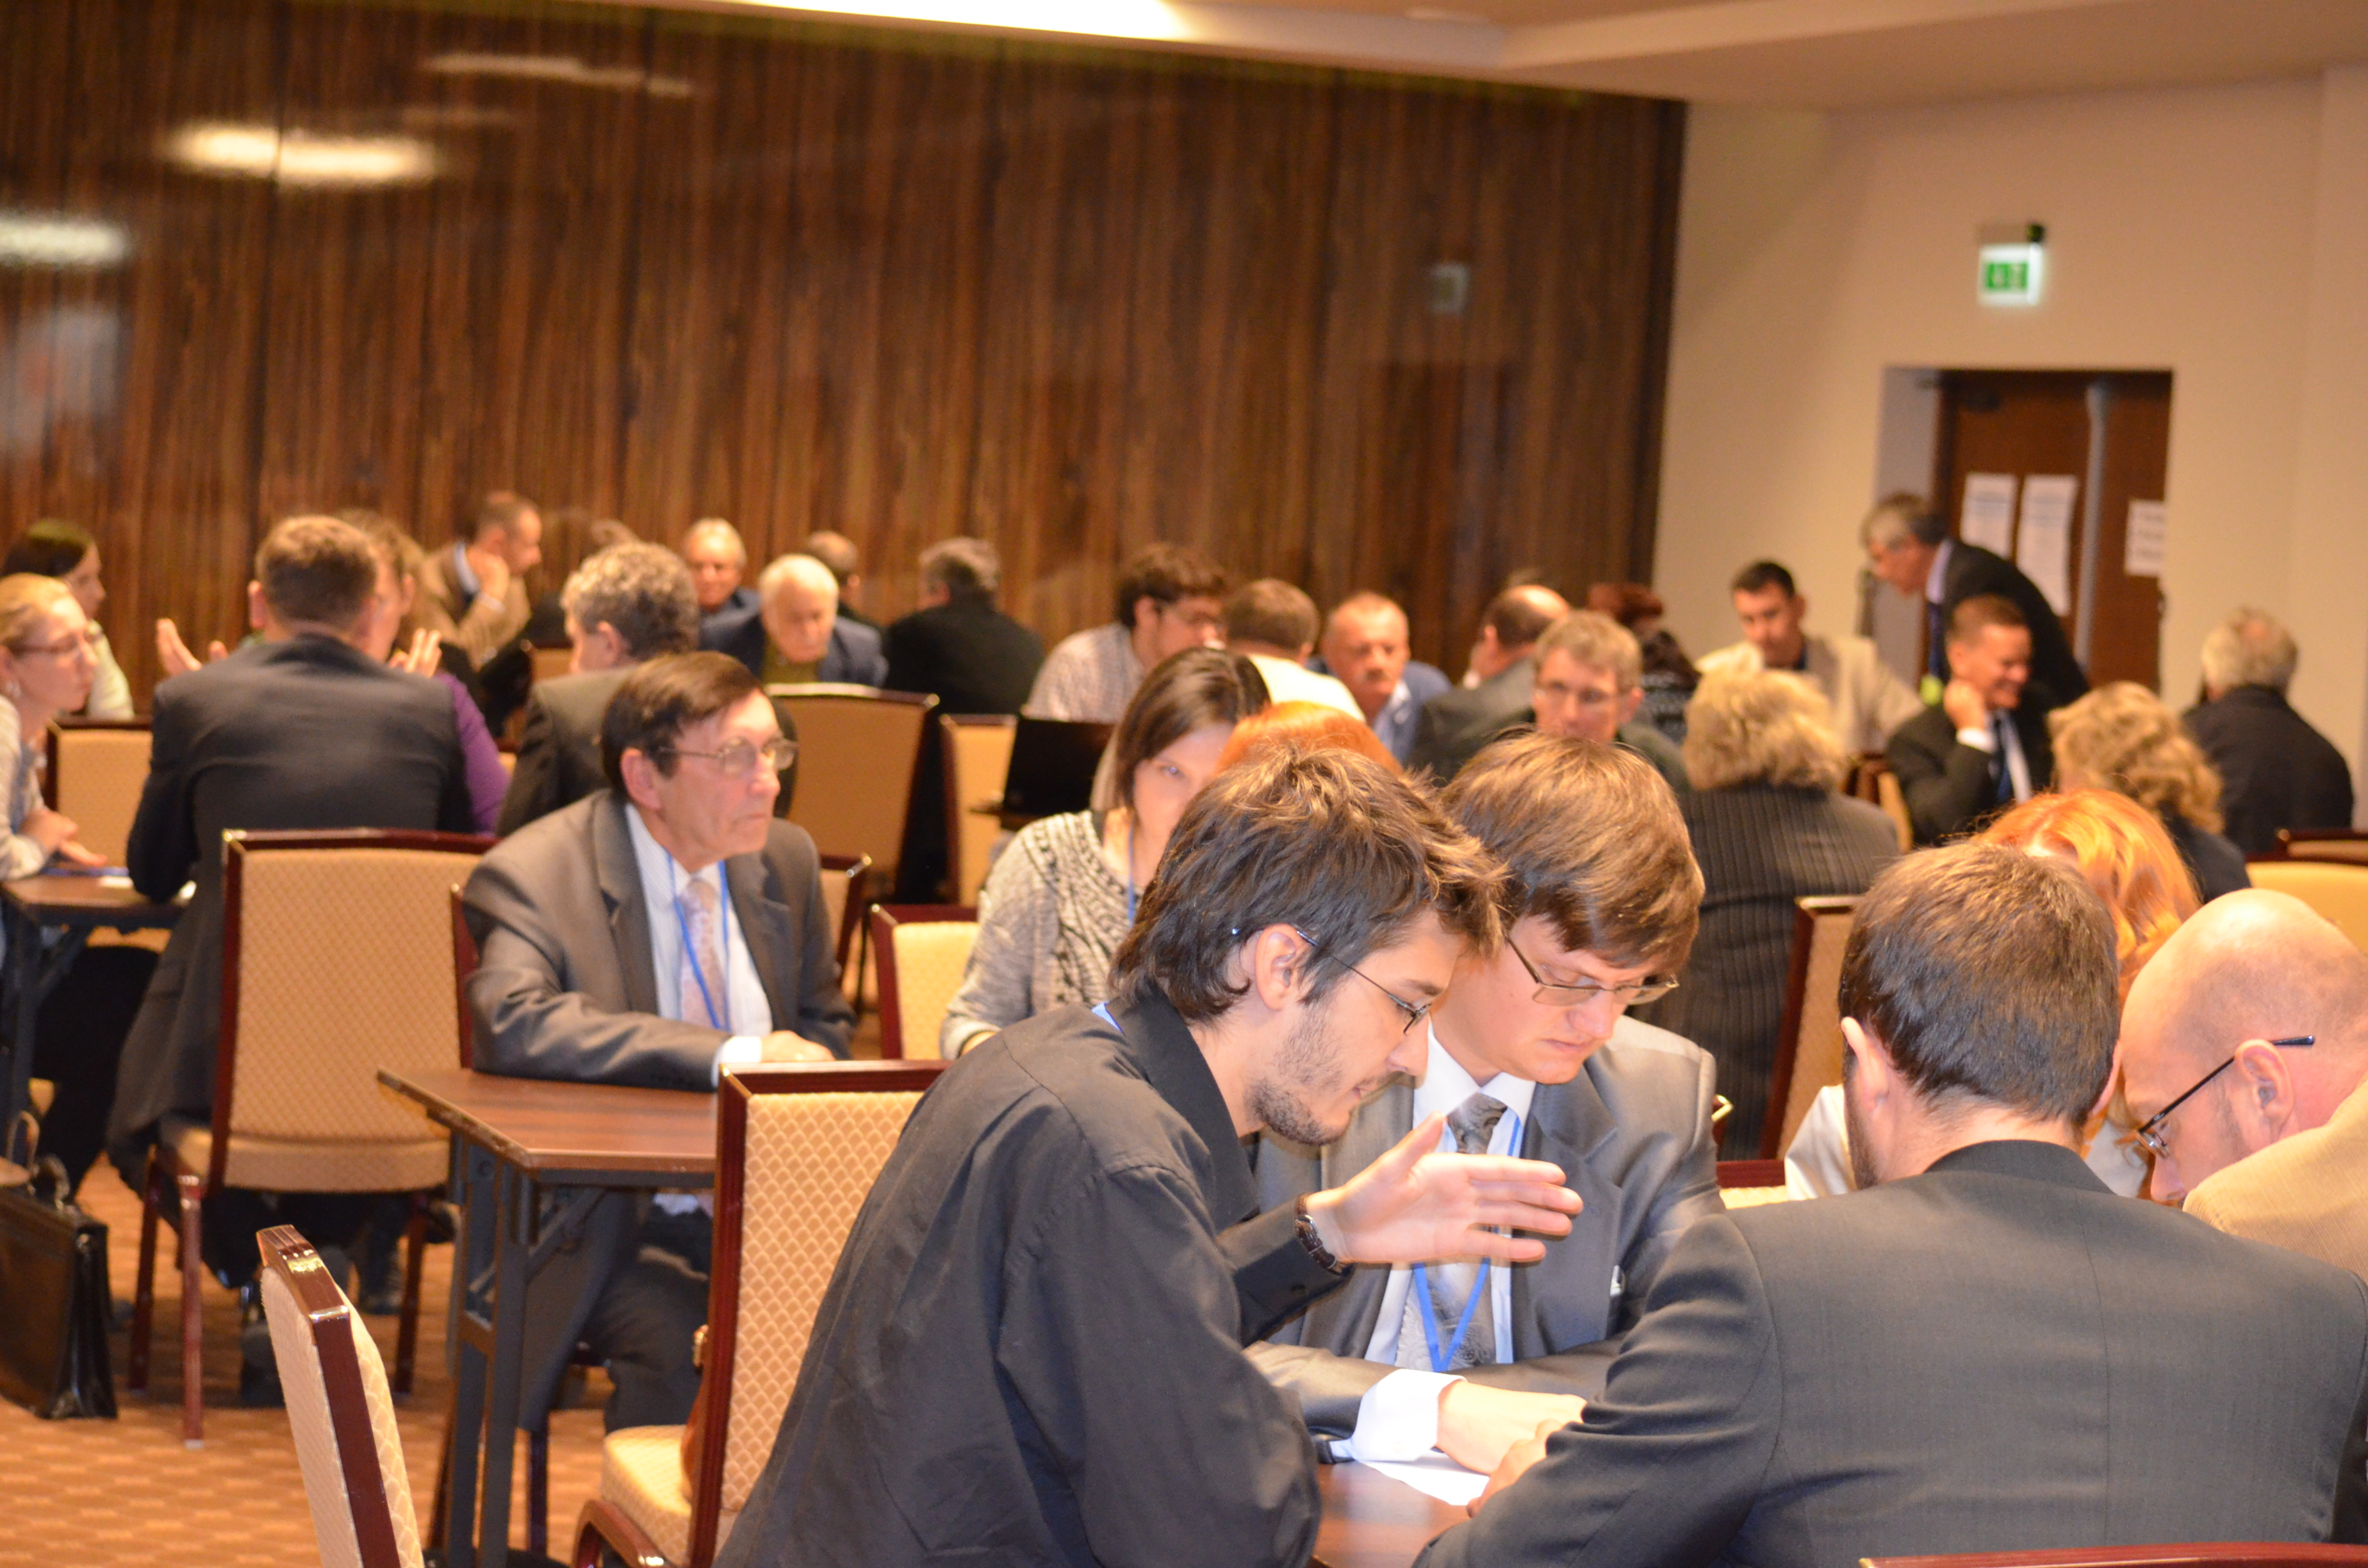 You are browsing images from the article: 5th Business Forum of Baltic and Eastern Markets - relation